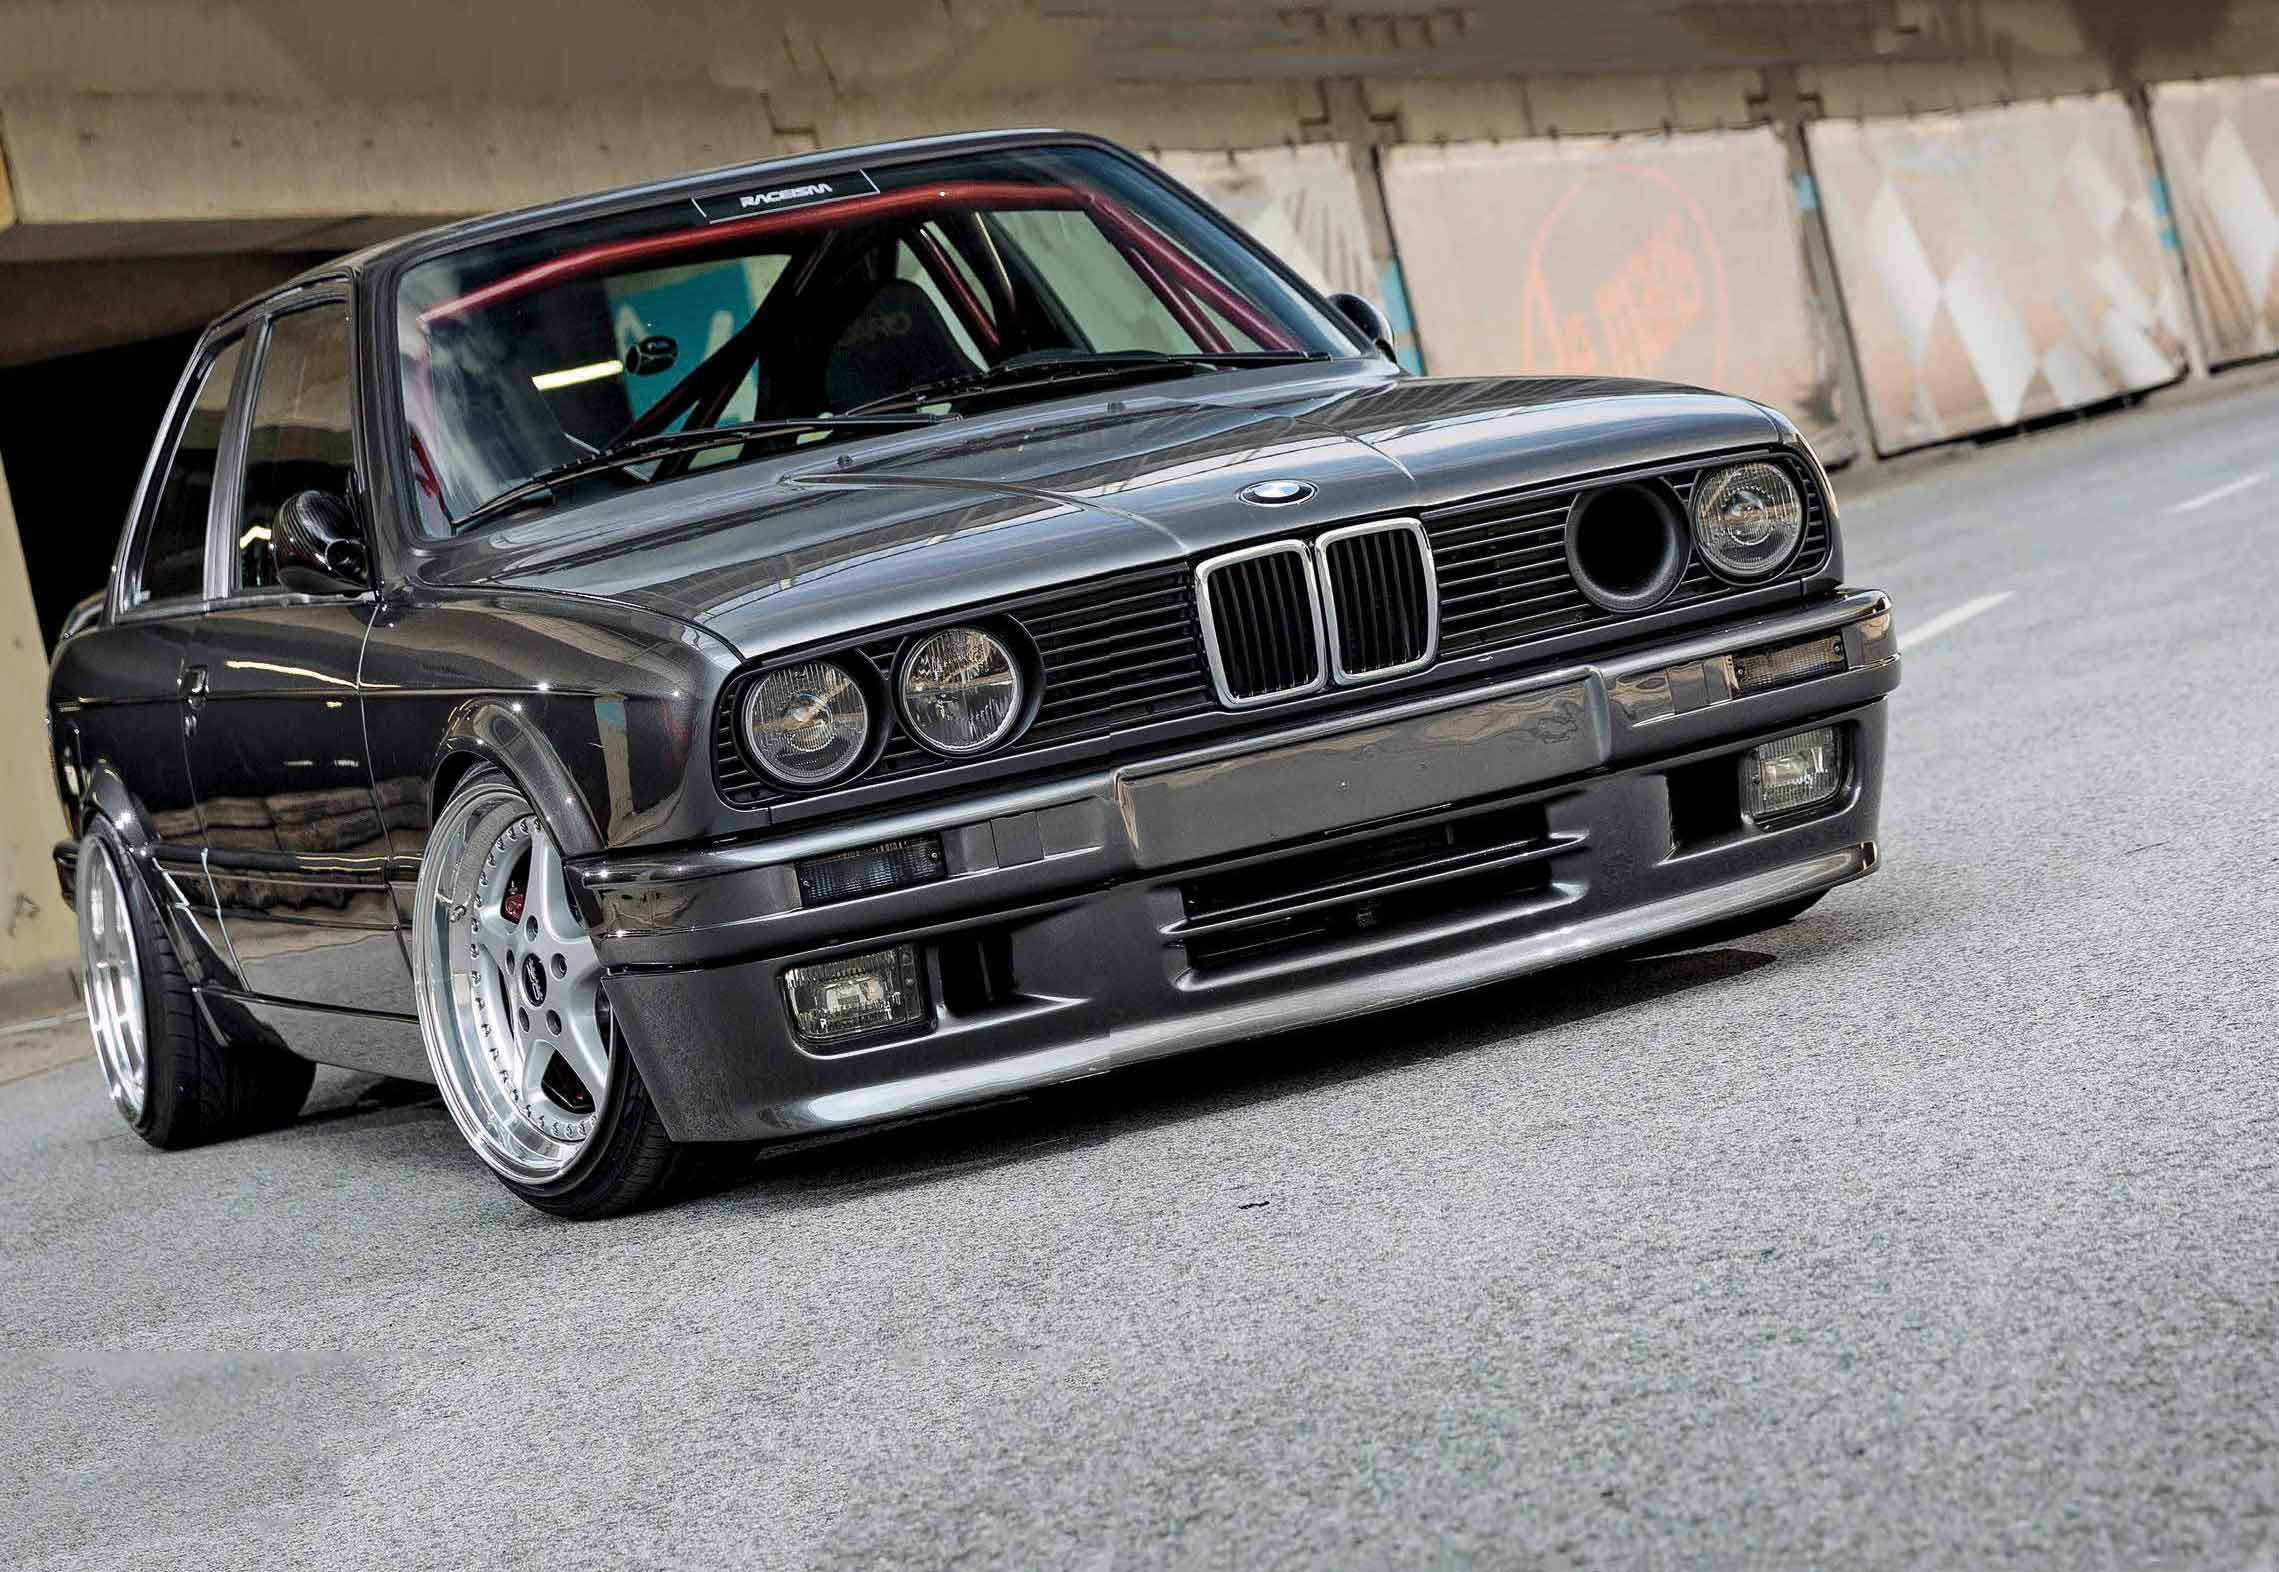 2 8-litre M20 stroker BMW 328i Coupe E30 - Drive-My Blogs - Drive